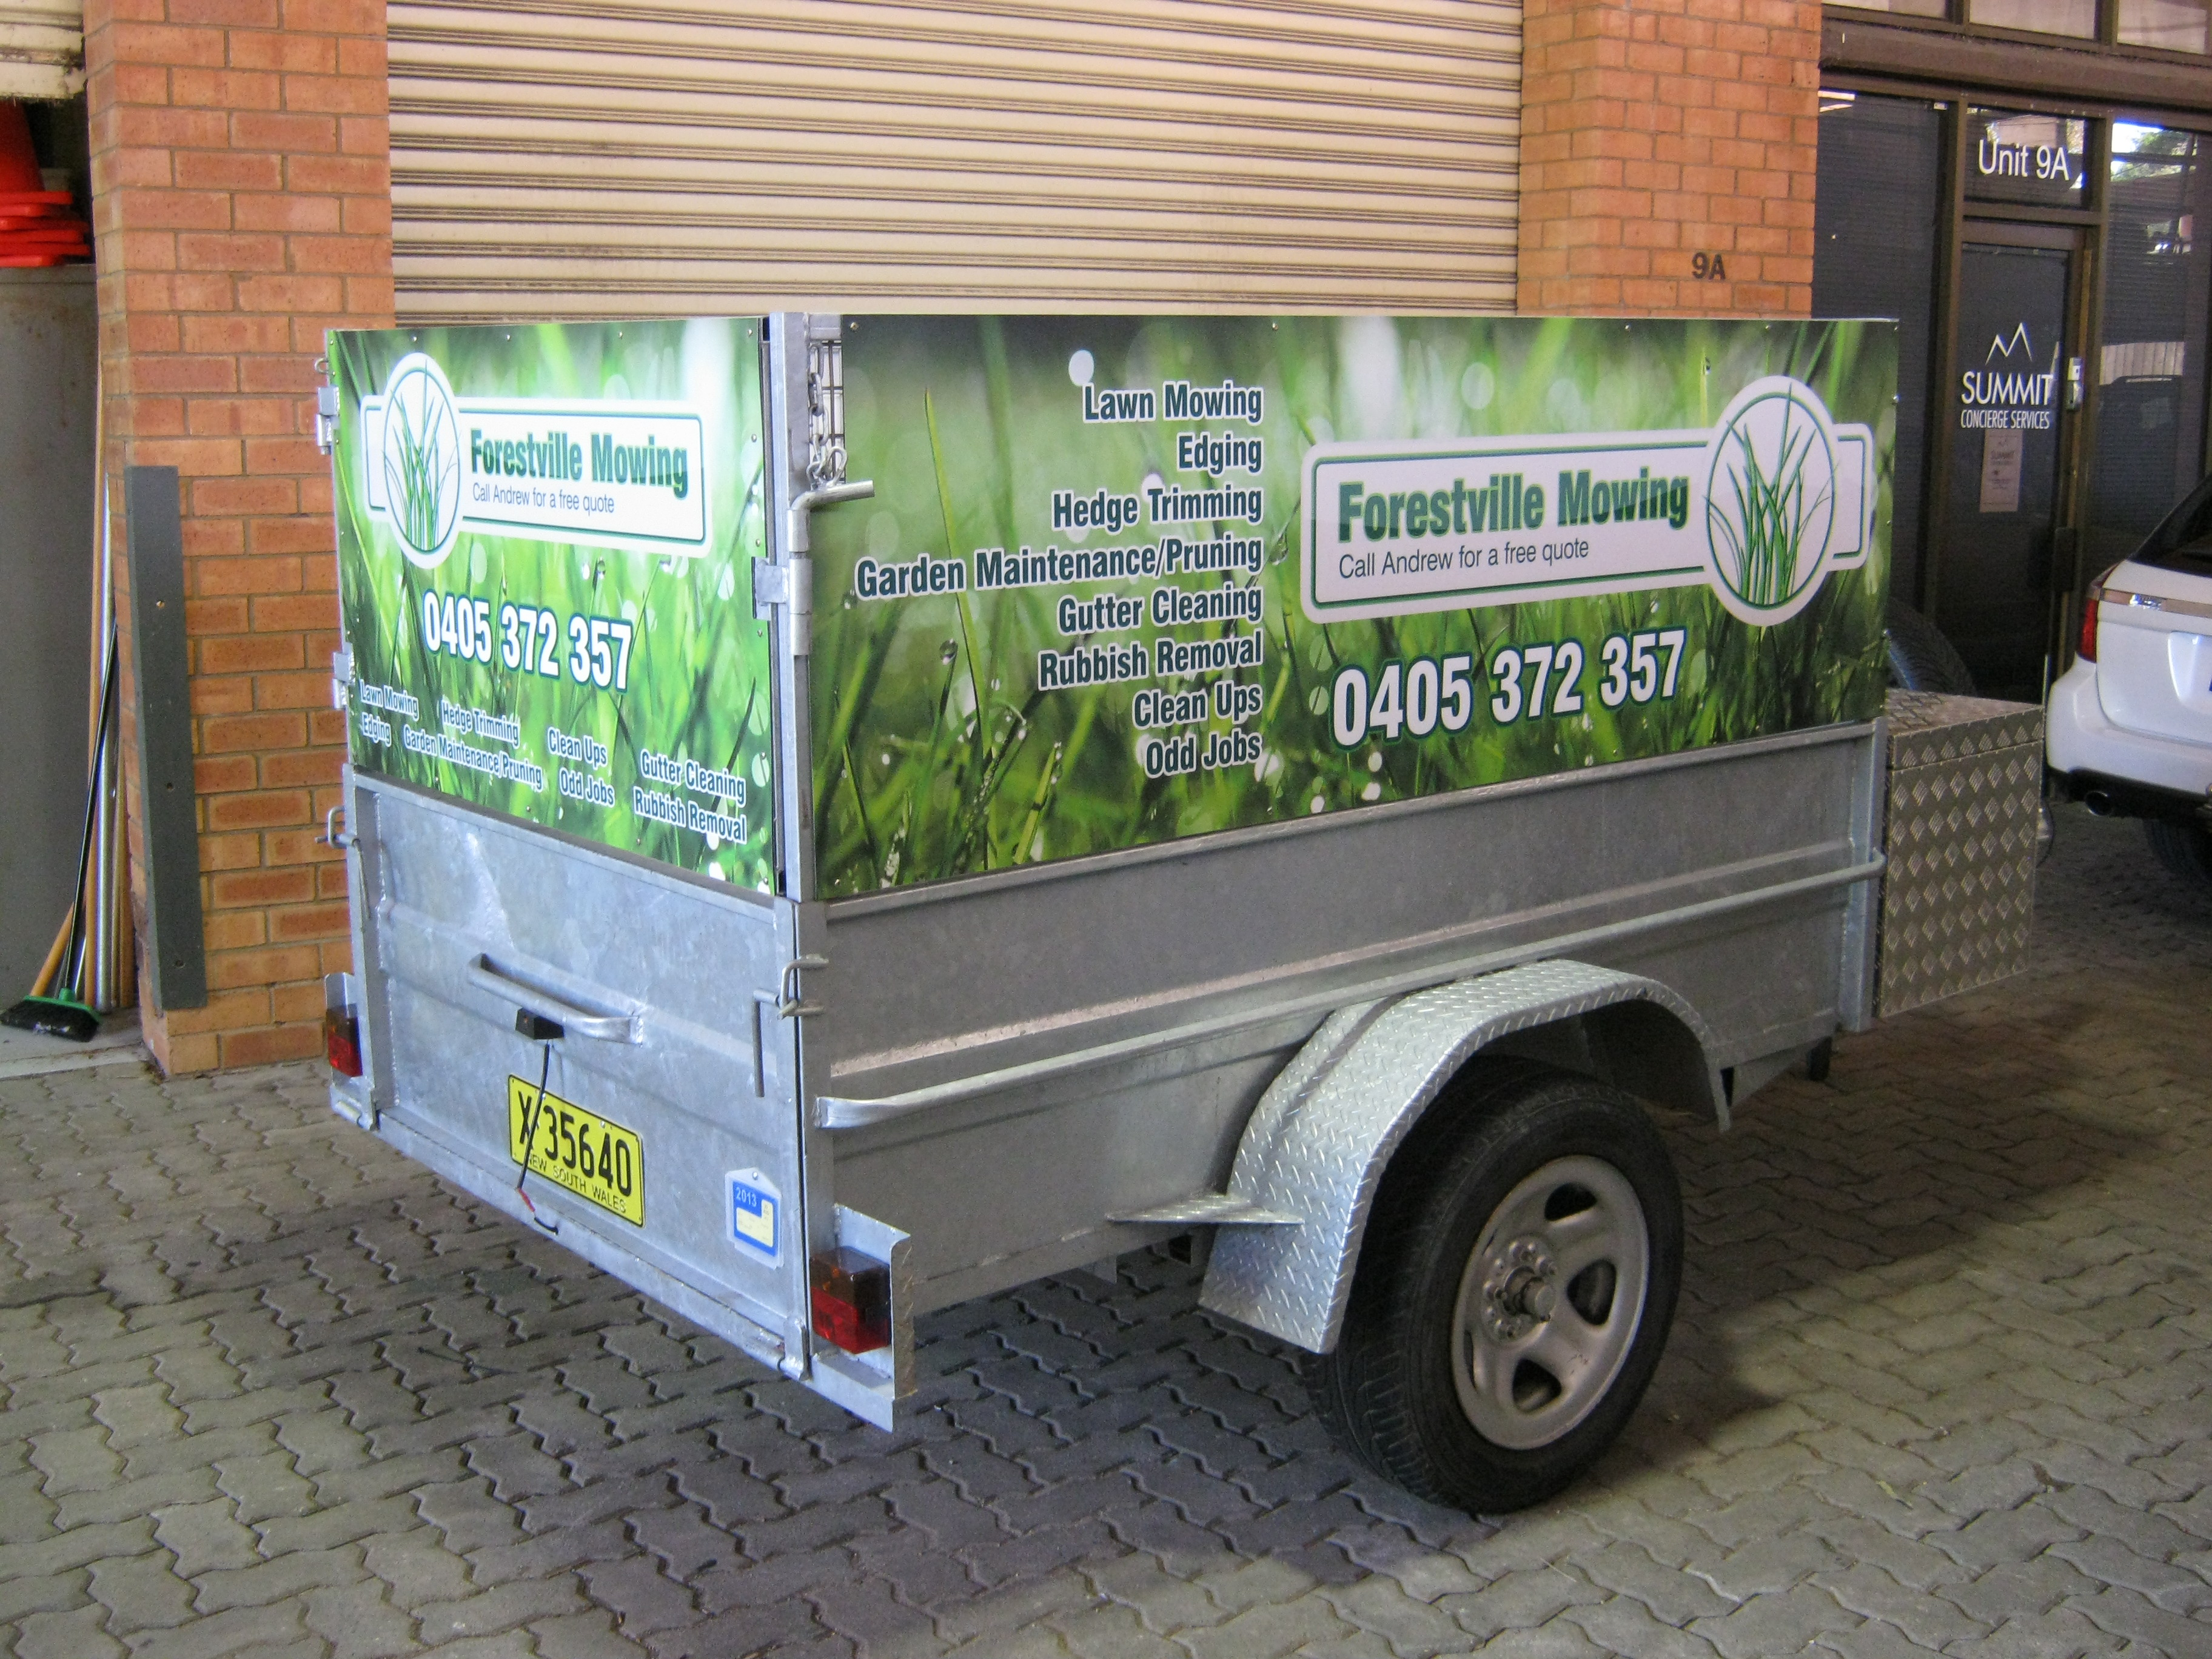 Jmac Graphics, Signage, Outdoor, Wrapping Car, Wrapping Trailer, ForestvilMowing